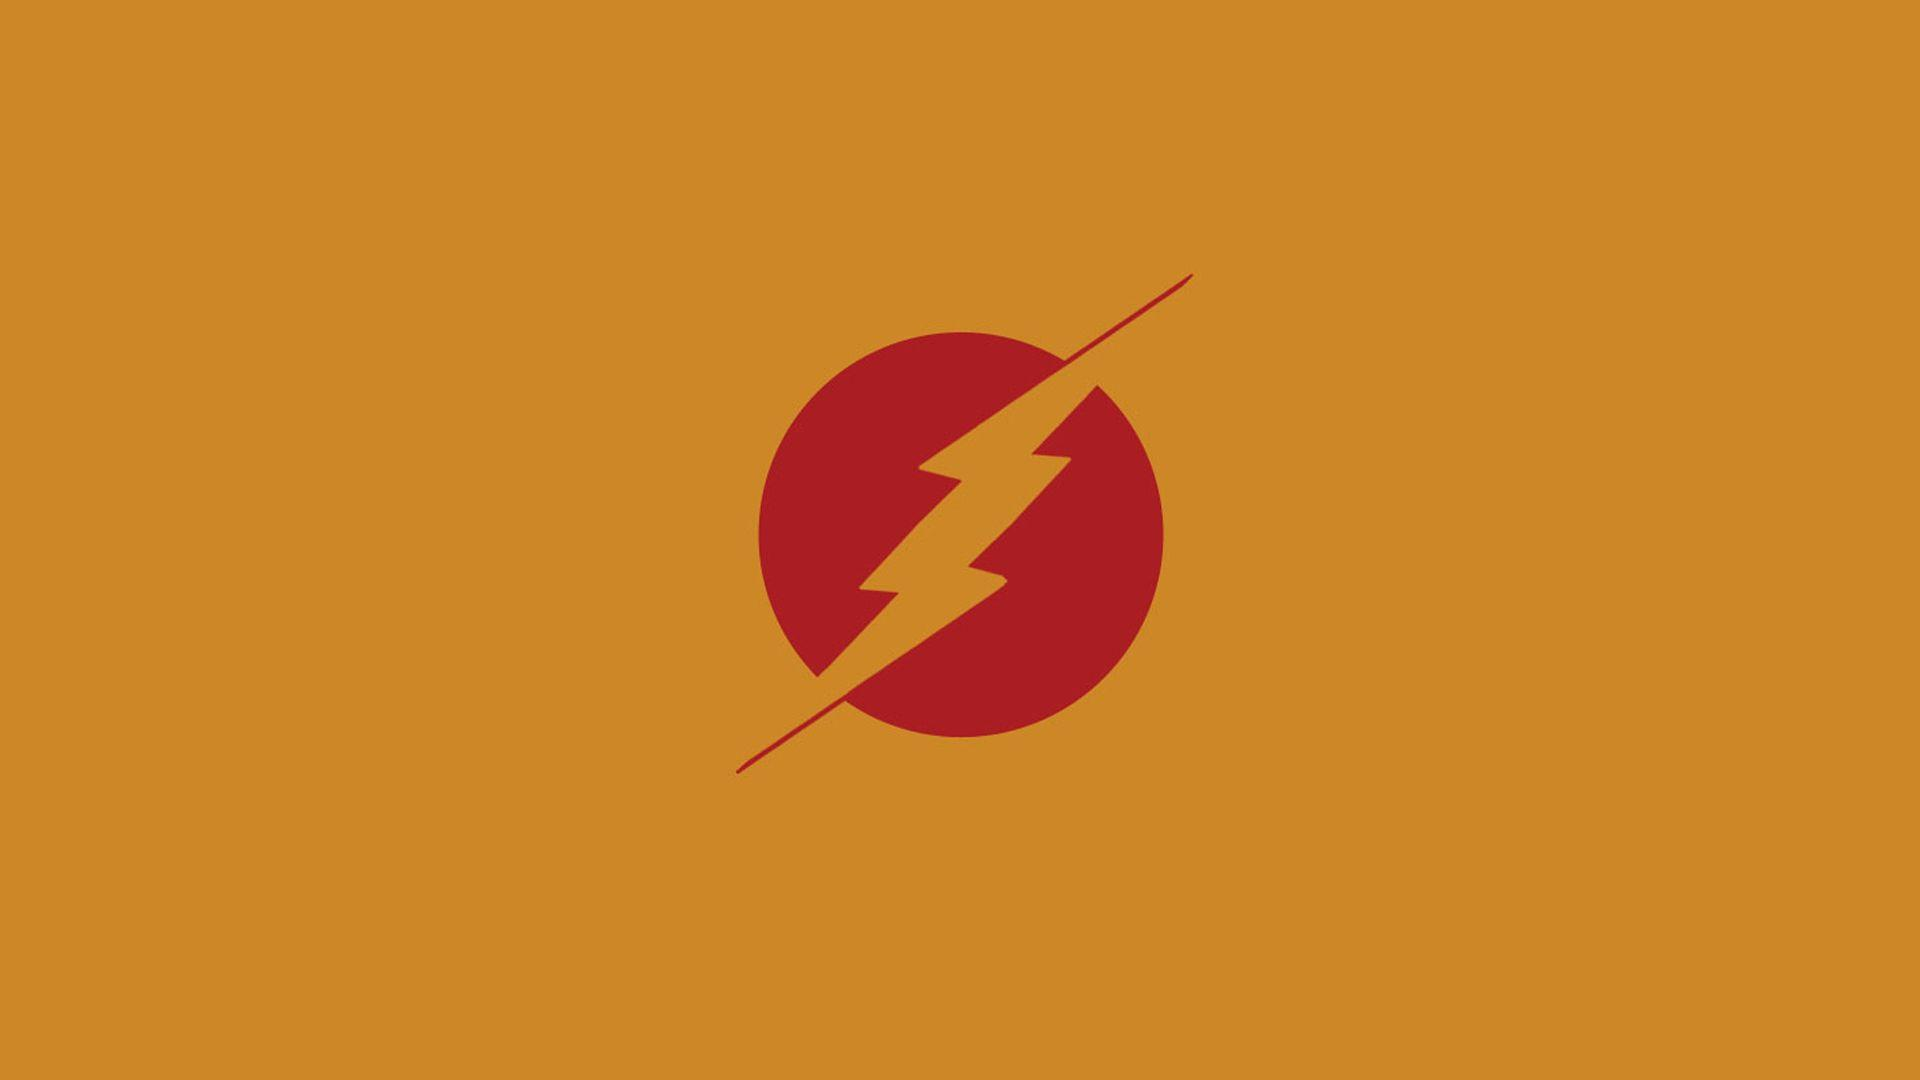 New Flash Pic View Wallpapers